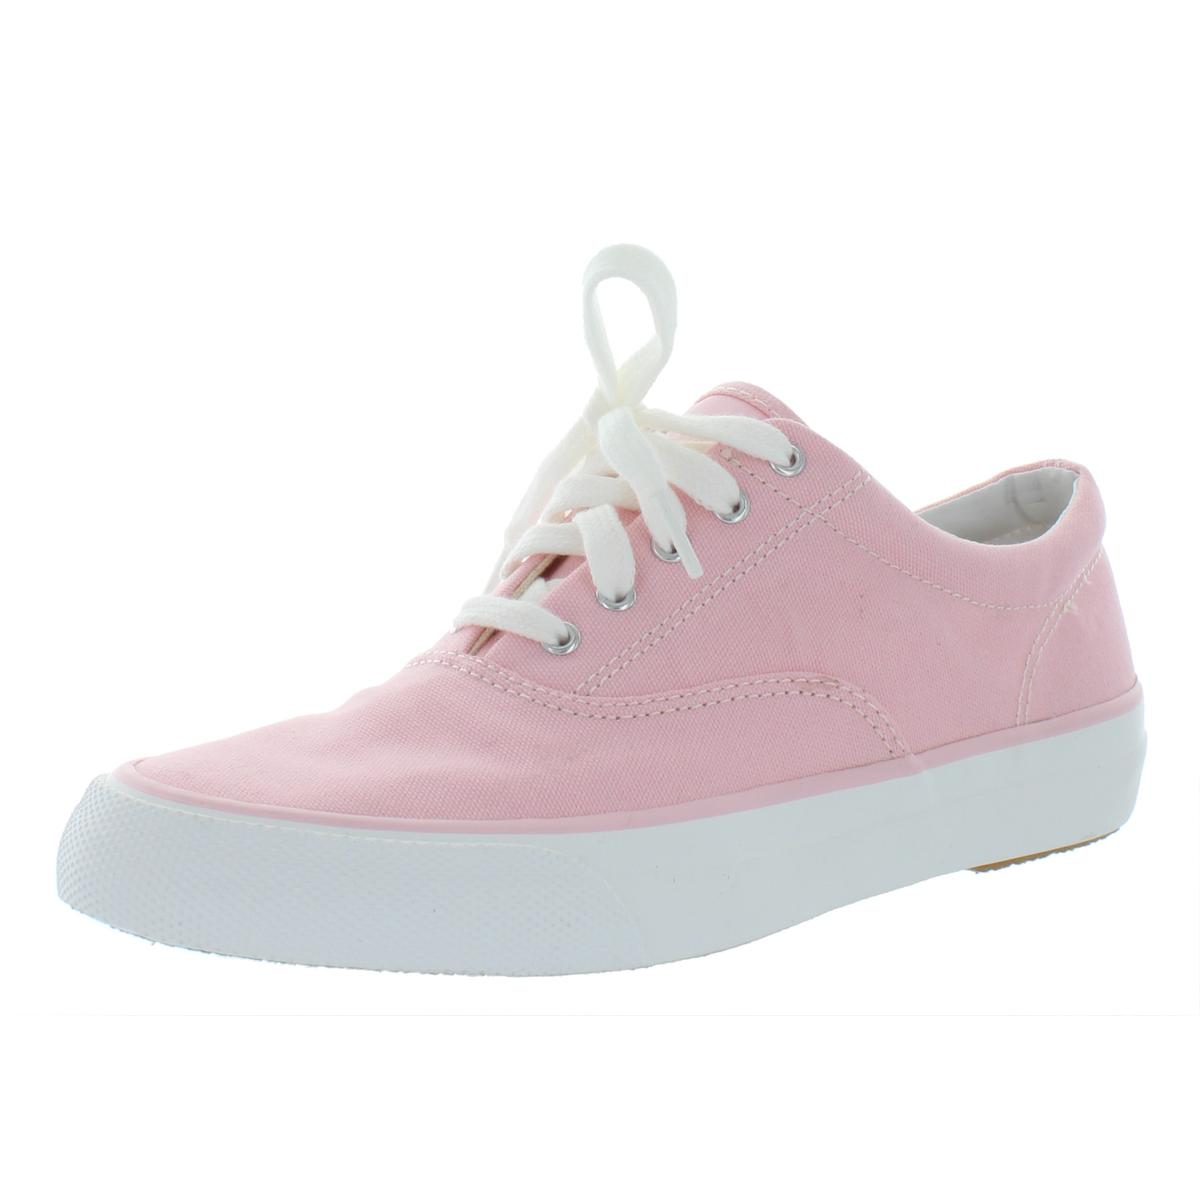 75a712c75d3 Keds Anchor Womens Canvas Almond Toe Fashion Sneakers